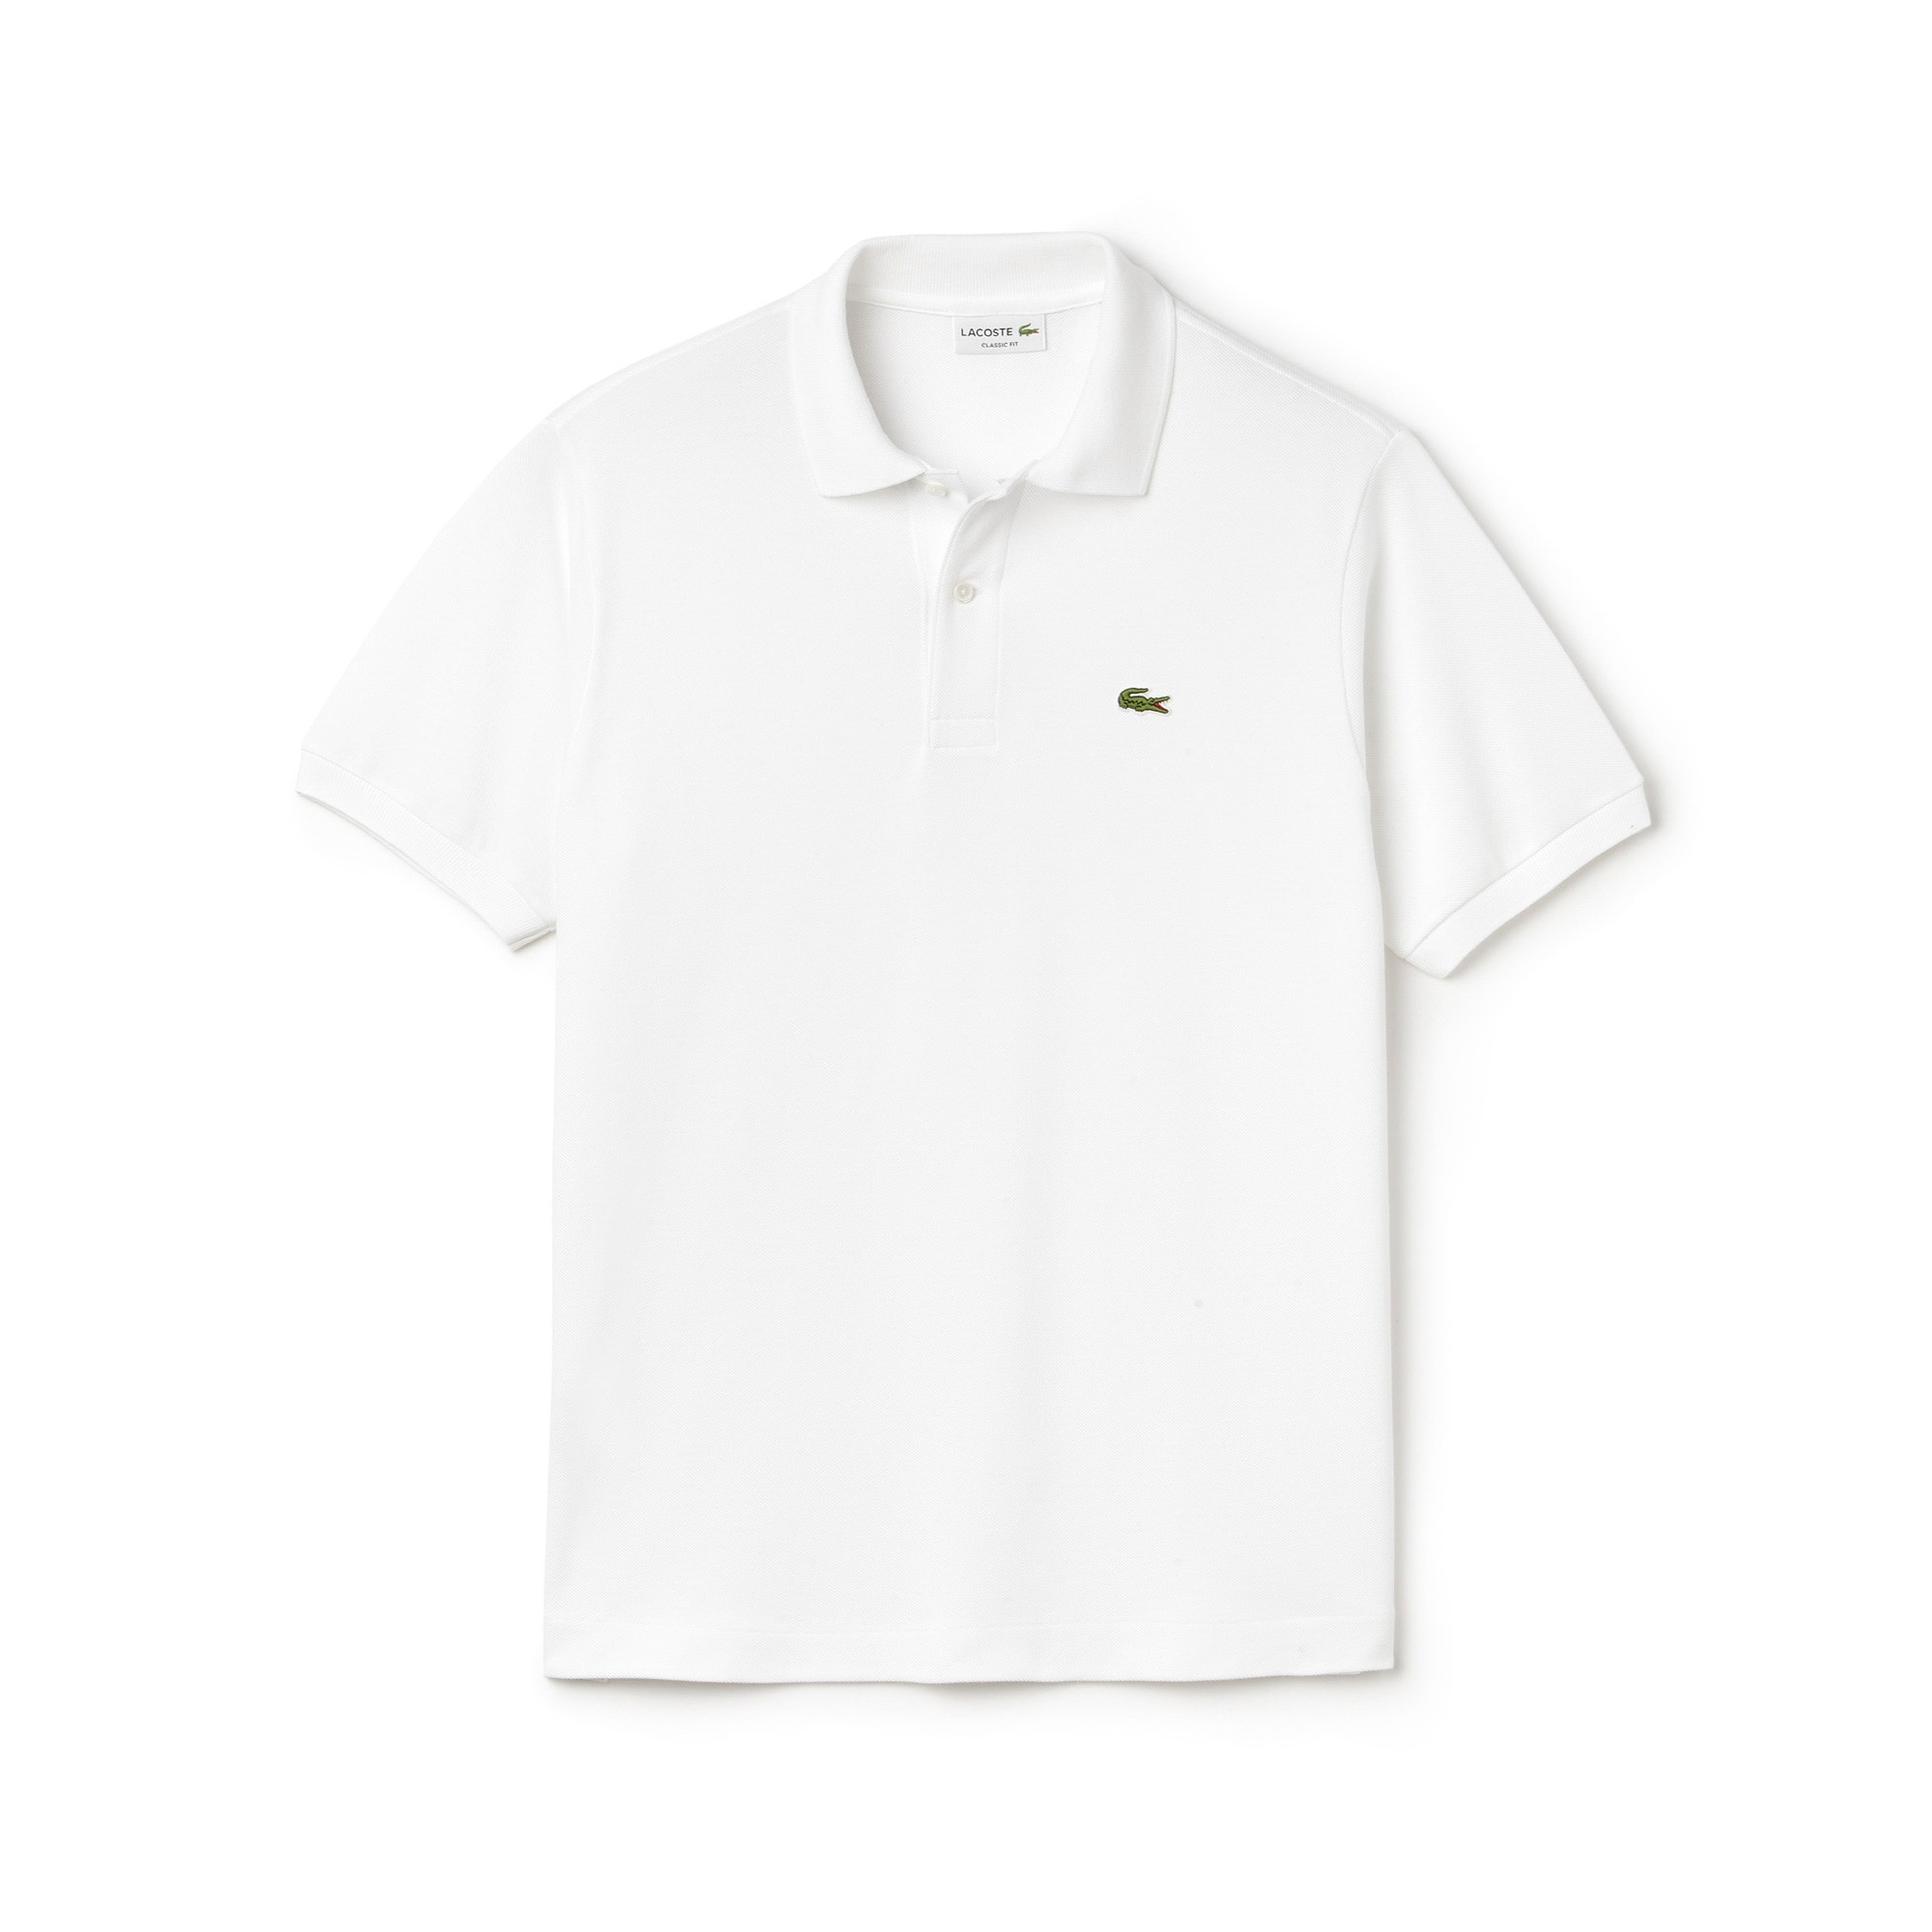 Men's Lacoste Big Fit Cotton Polo Shirt